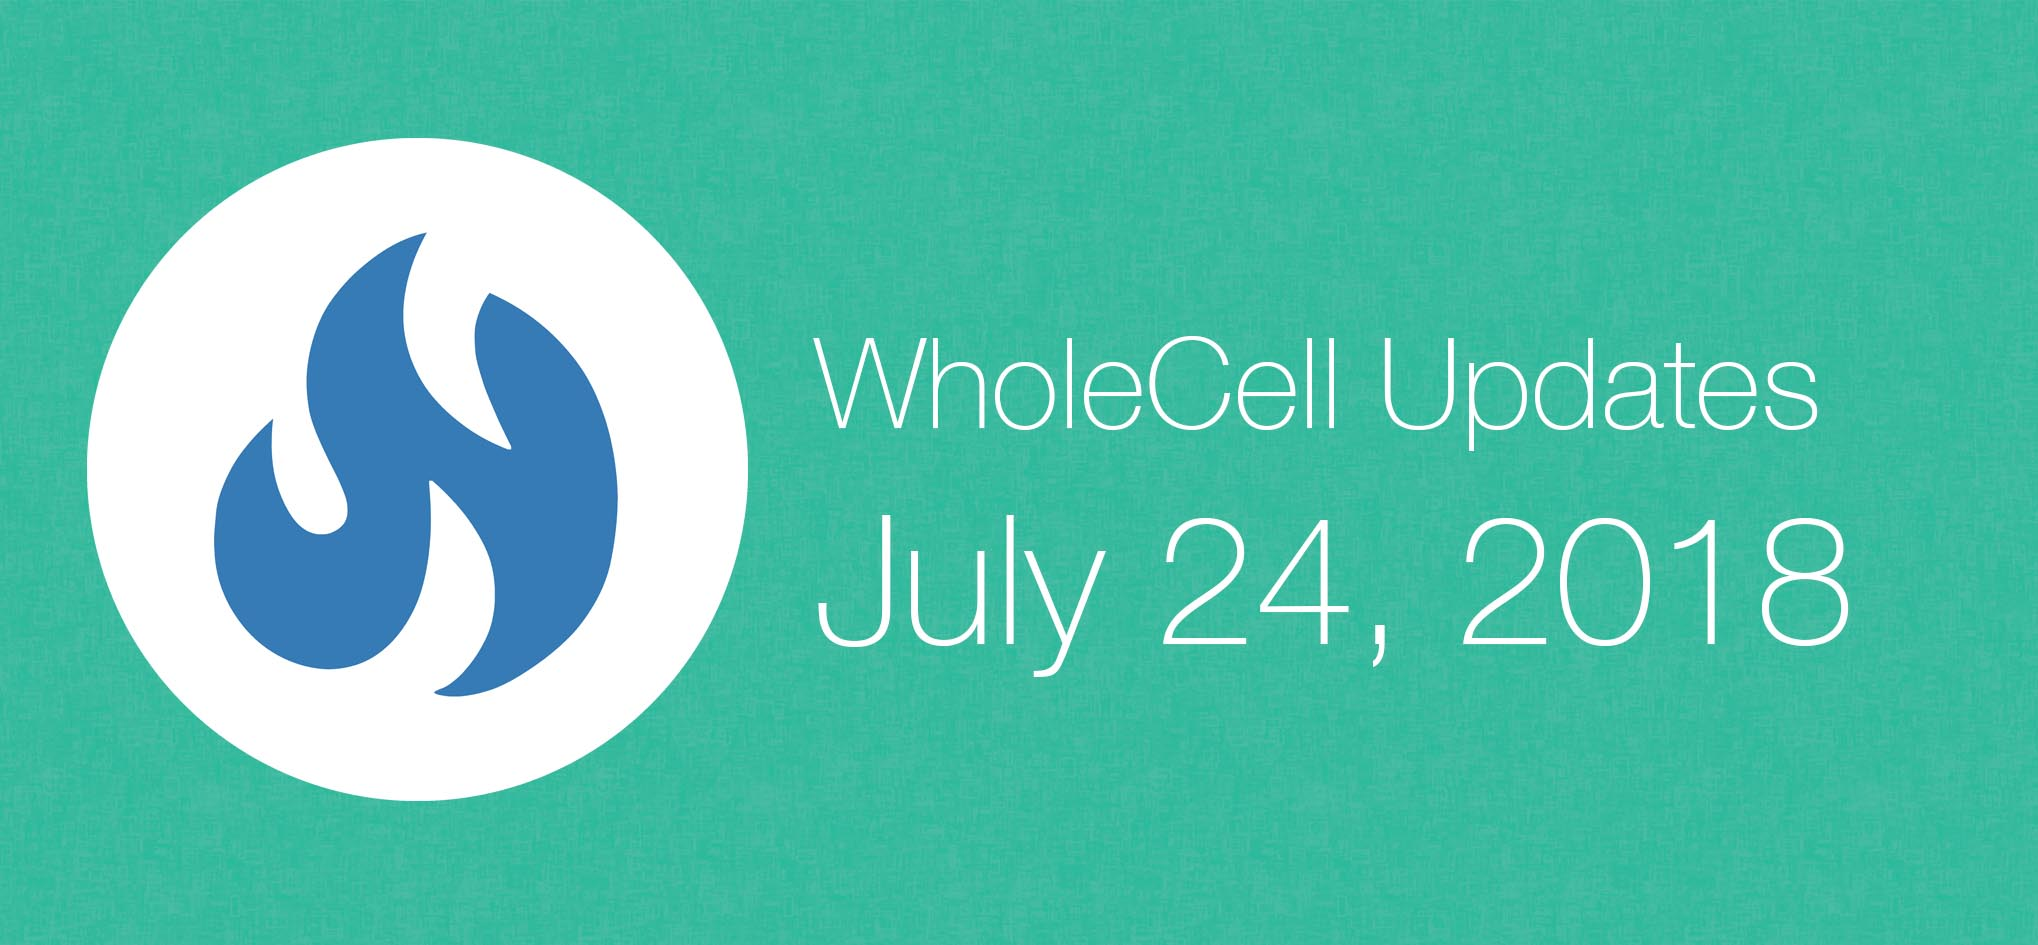 Wholecell updates 7242018